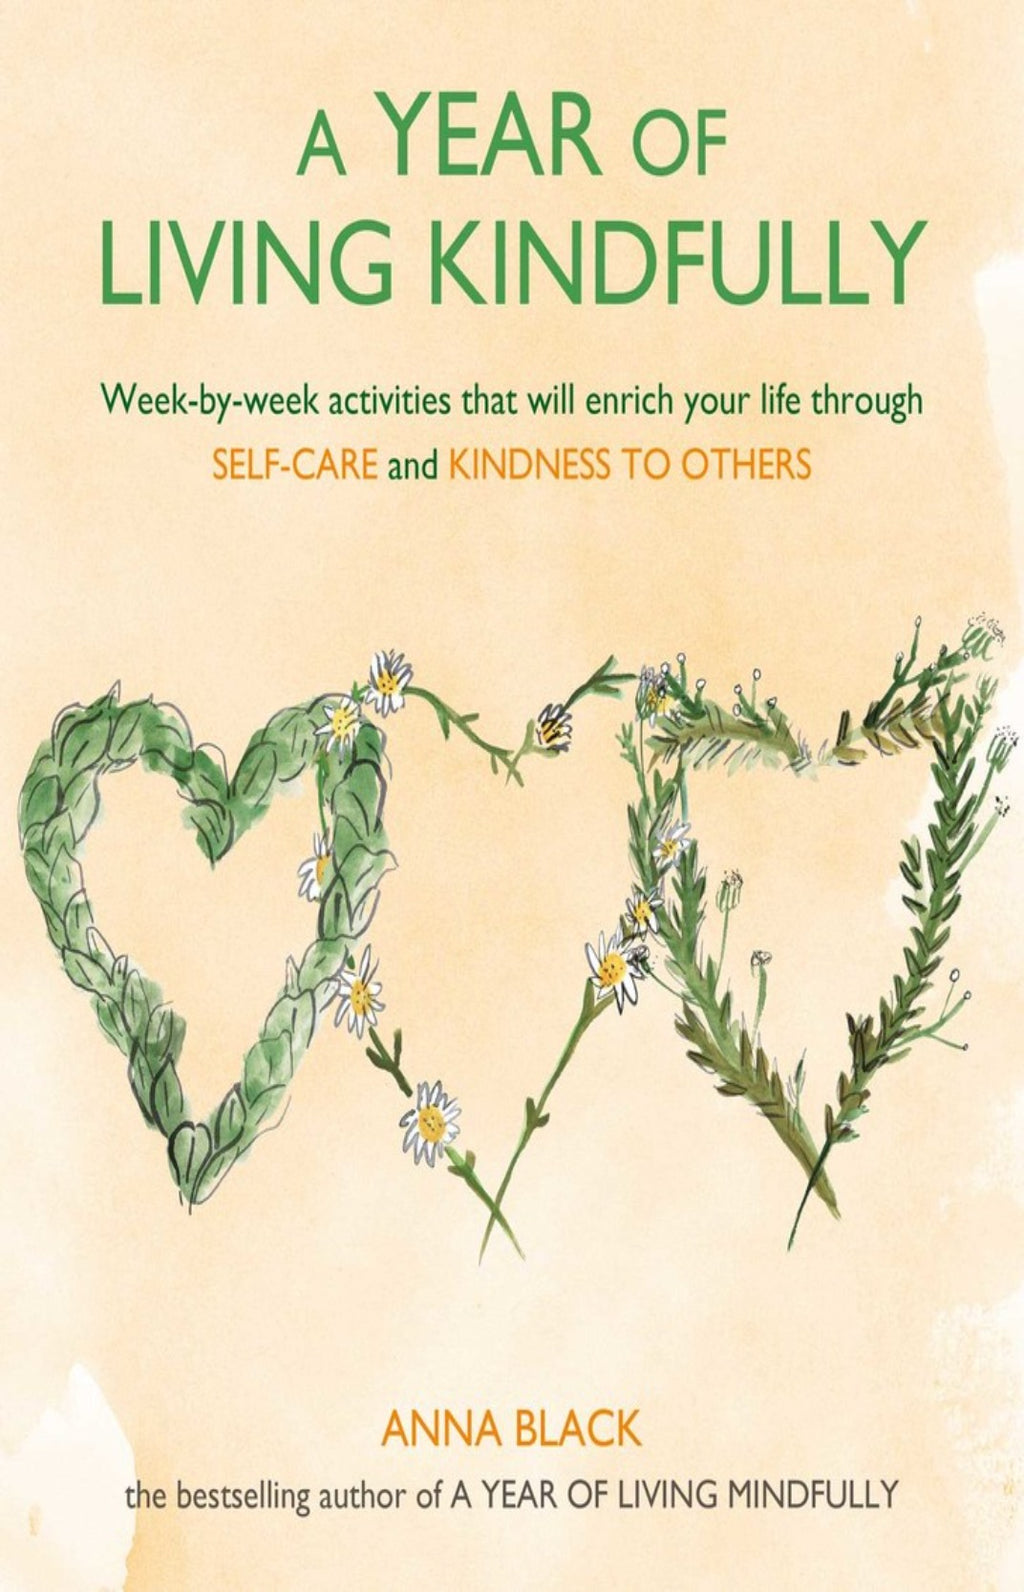 A Year of Living Kindfully : Week-By-Week Activities That Will Enrich Your Life Through Self-Care and Kindness to Others